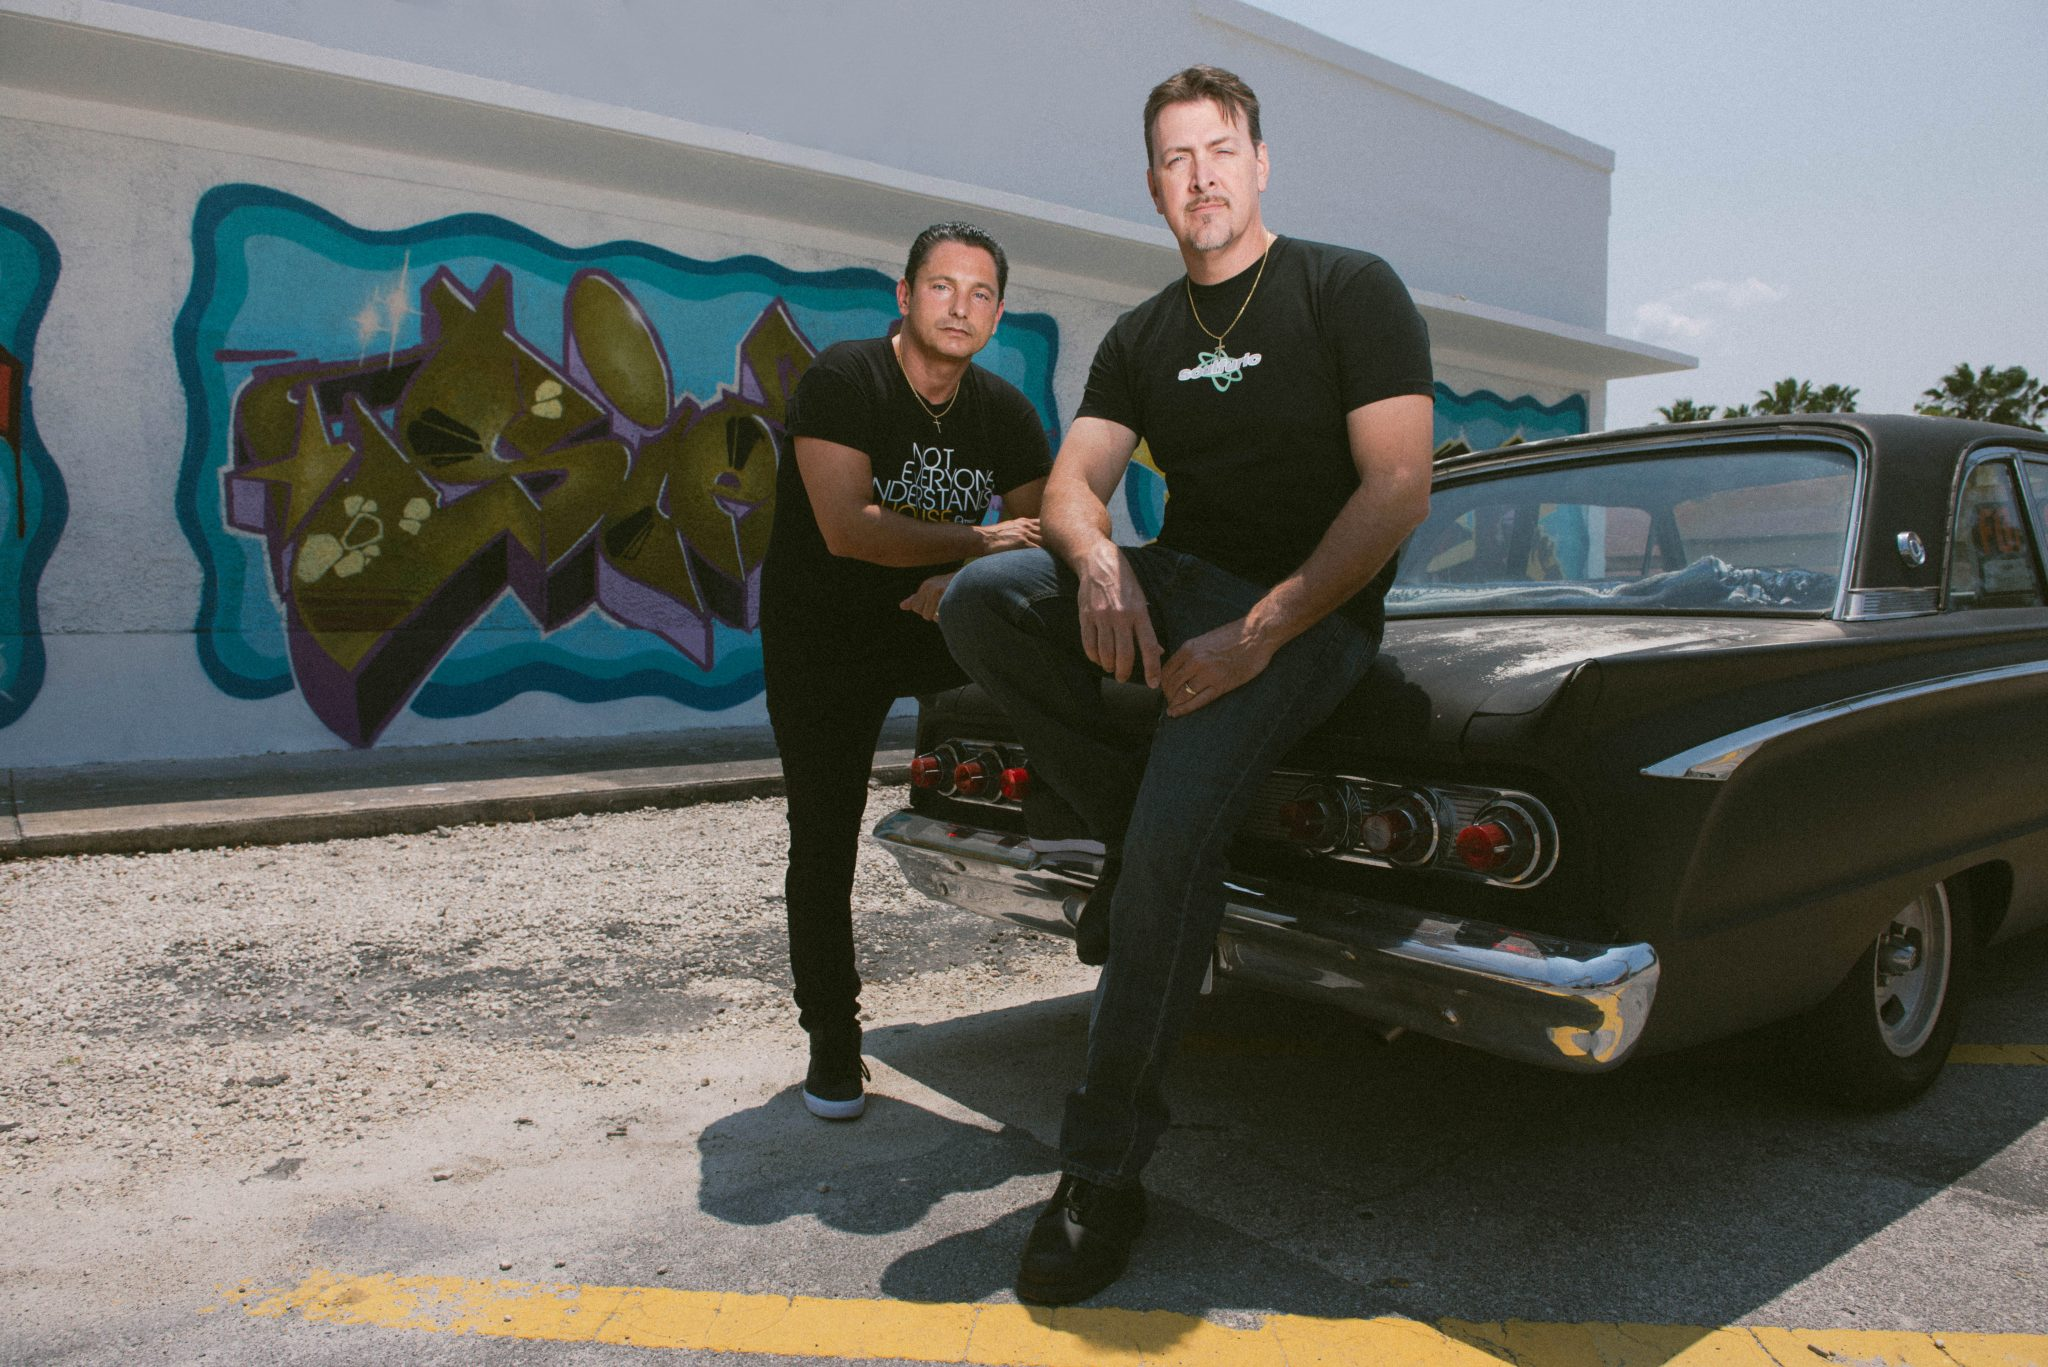 Vk dropbox boy links car pictures - Traxsource Founders Brian Tappert And Marc Pomeroy Talk Jazz N Groove And Defected S